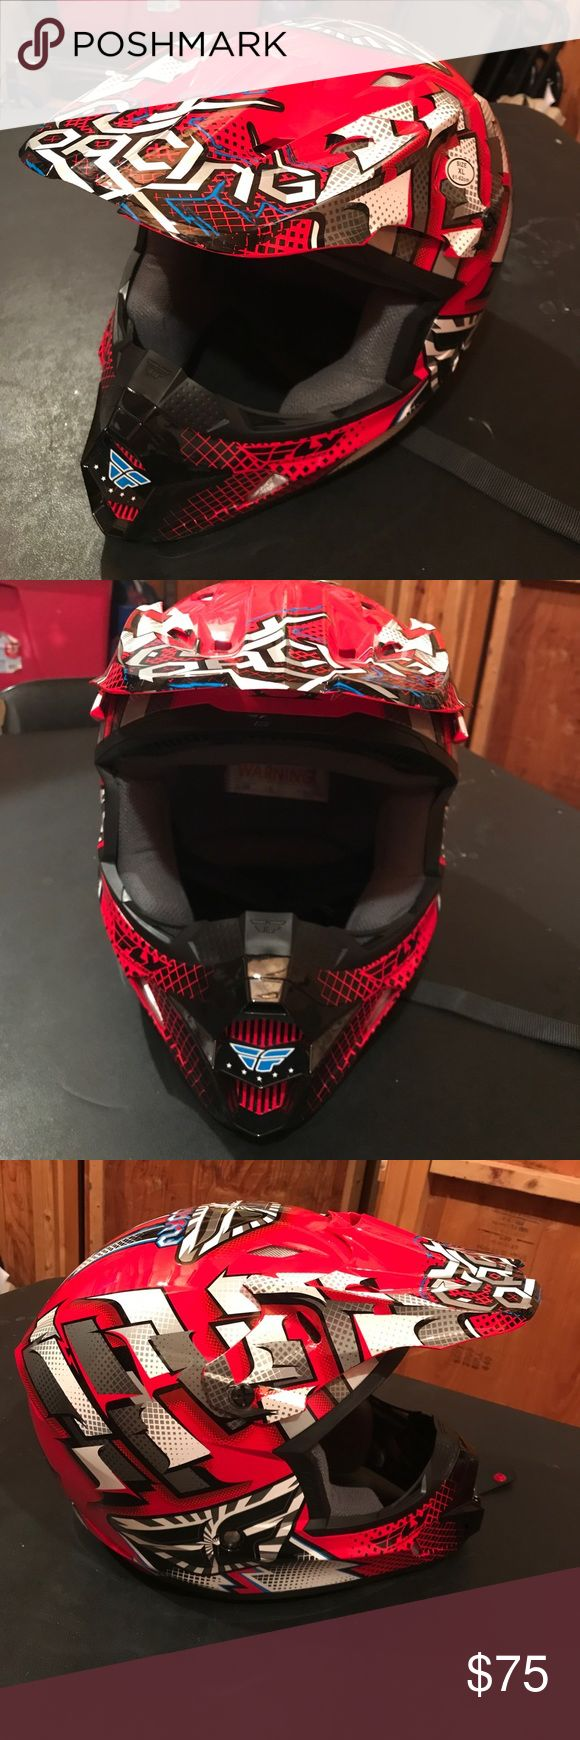 Brand New ATV Helmet Brand New ATV Helmet.  Never worn, comes with dust cloth bag. Colors red, blue, black, white and silver. Other